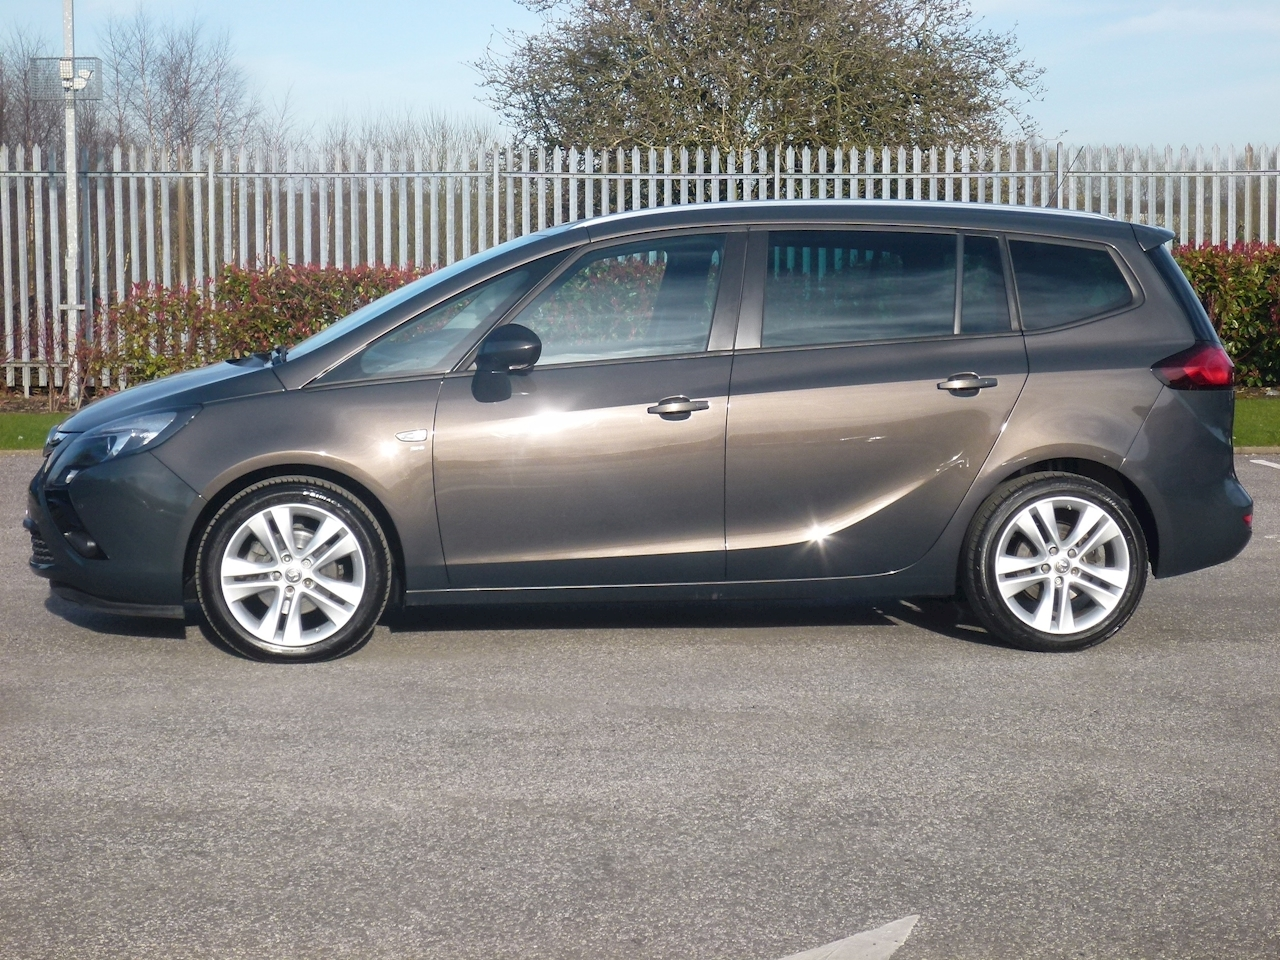 used vauxhall zafira tourer sri 7 seater tottington motor company ltd forecourt. Black Bedroom Furniture Sets. Home Design Ideas